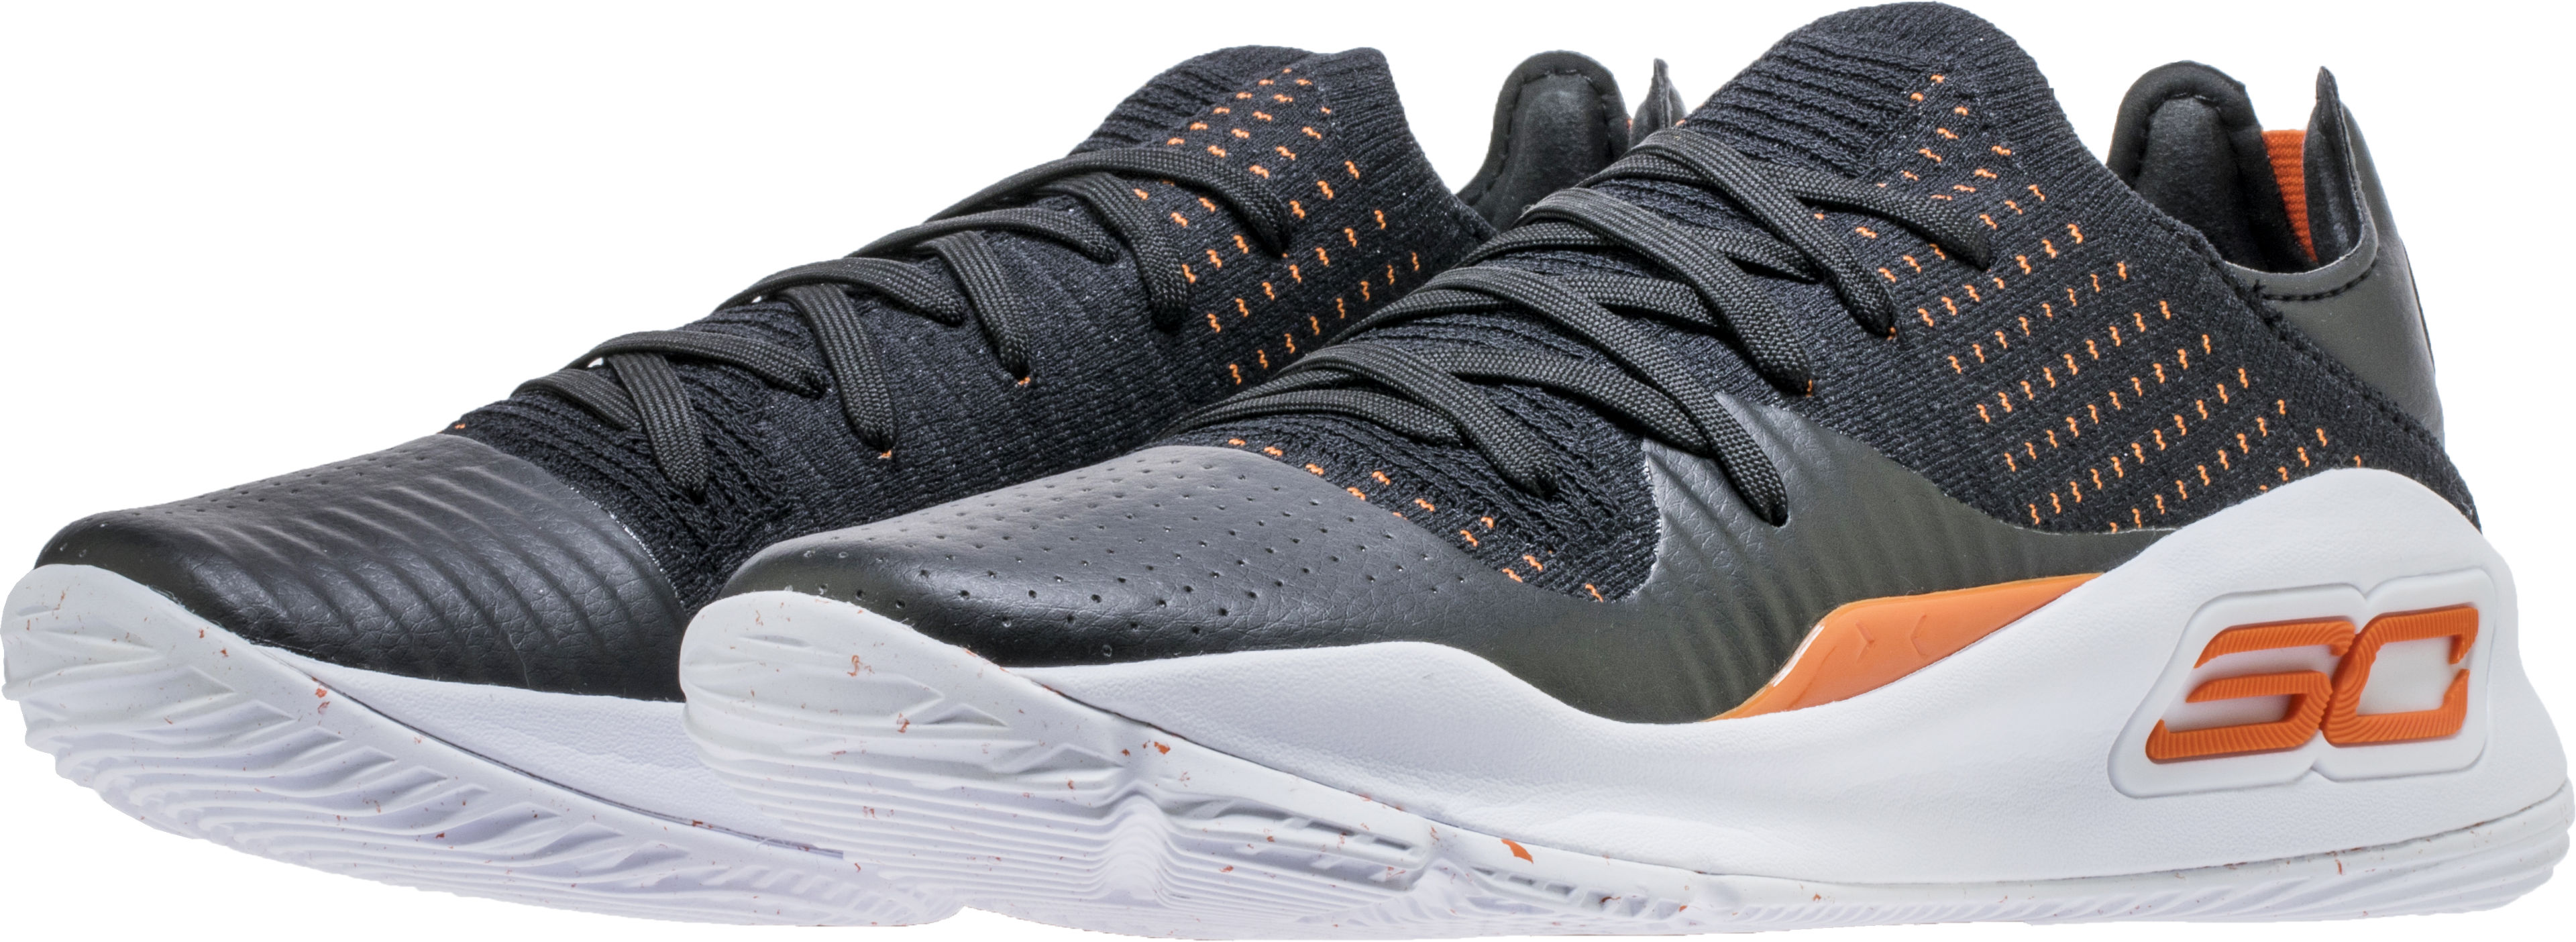 under armour curry 4 low san francisco giants 3